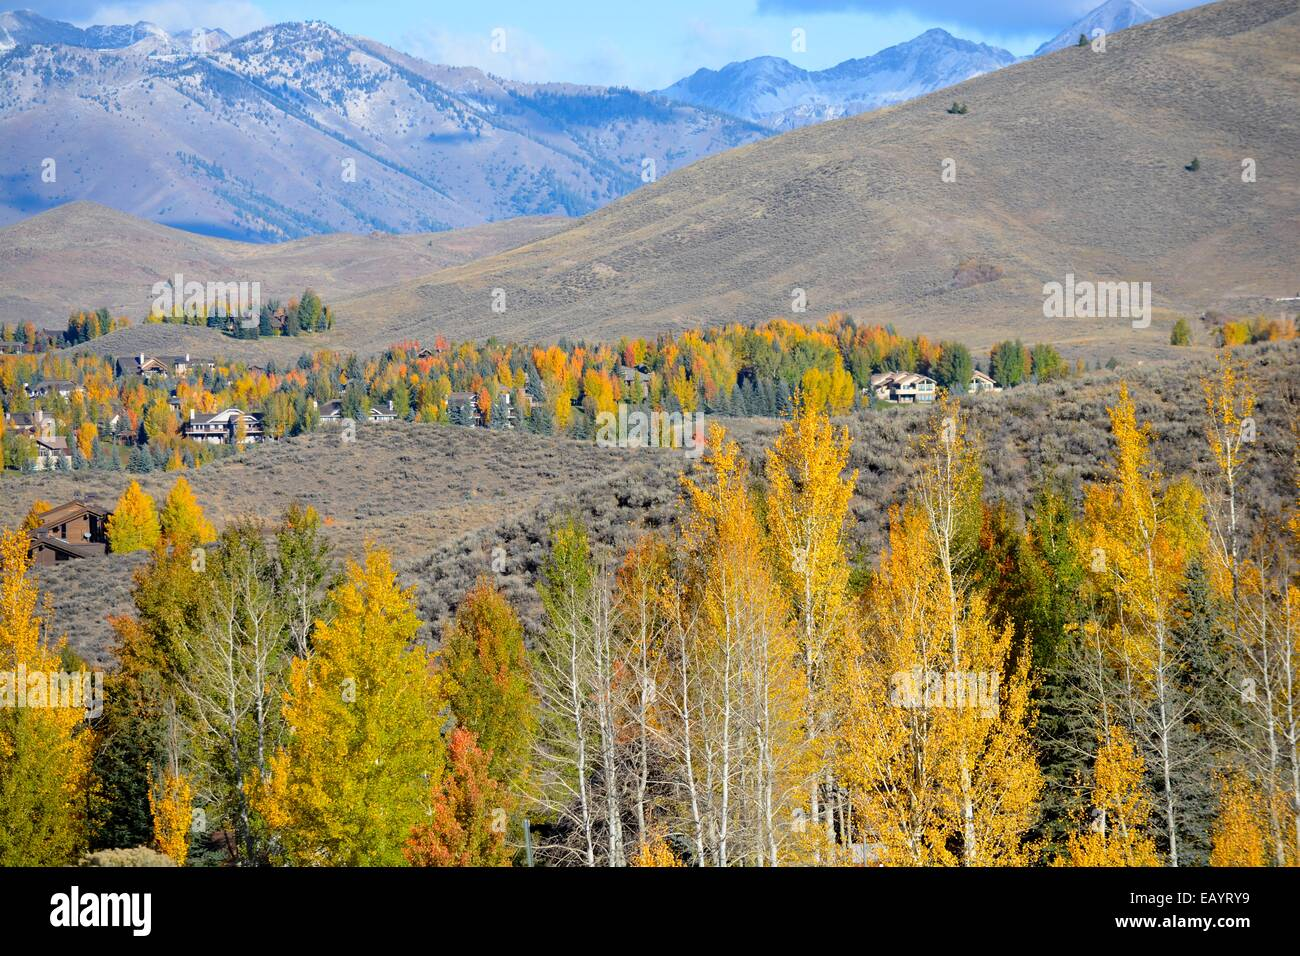 Sun Vally Idaho - Stock Image